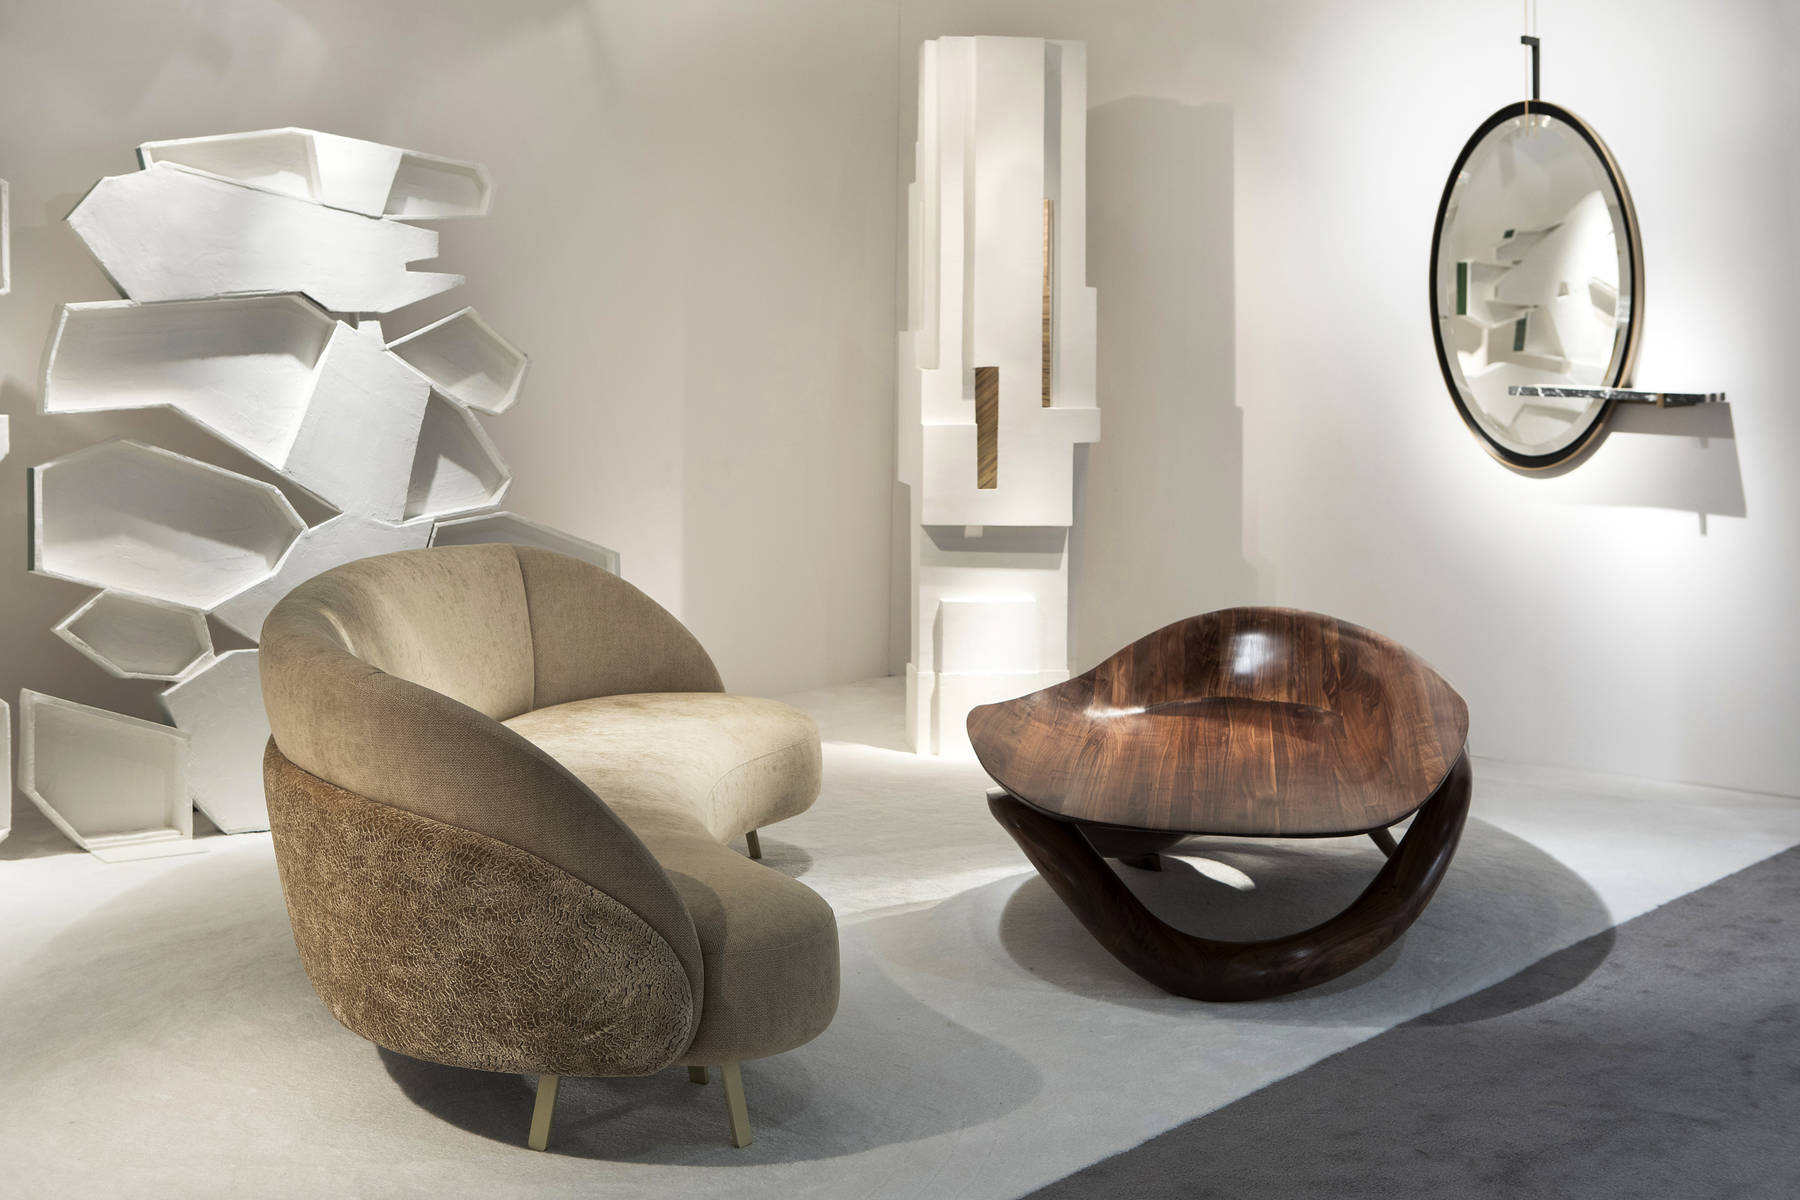 PAD Paris 2019 - Isabelle Stanislas Exquisite Designs in Galerie BSL - Interior Design - Ellipse Mirror Striped pad paris PAD Paris 2019: Isabelle Stanislas' Exquisite Designs in Galerie BSL PAD Paris 2019 Isabelle Stanislas Exquisite Designs in Galerie BSL Interior Design Ellipse Mirror Striped